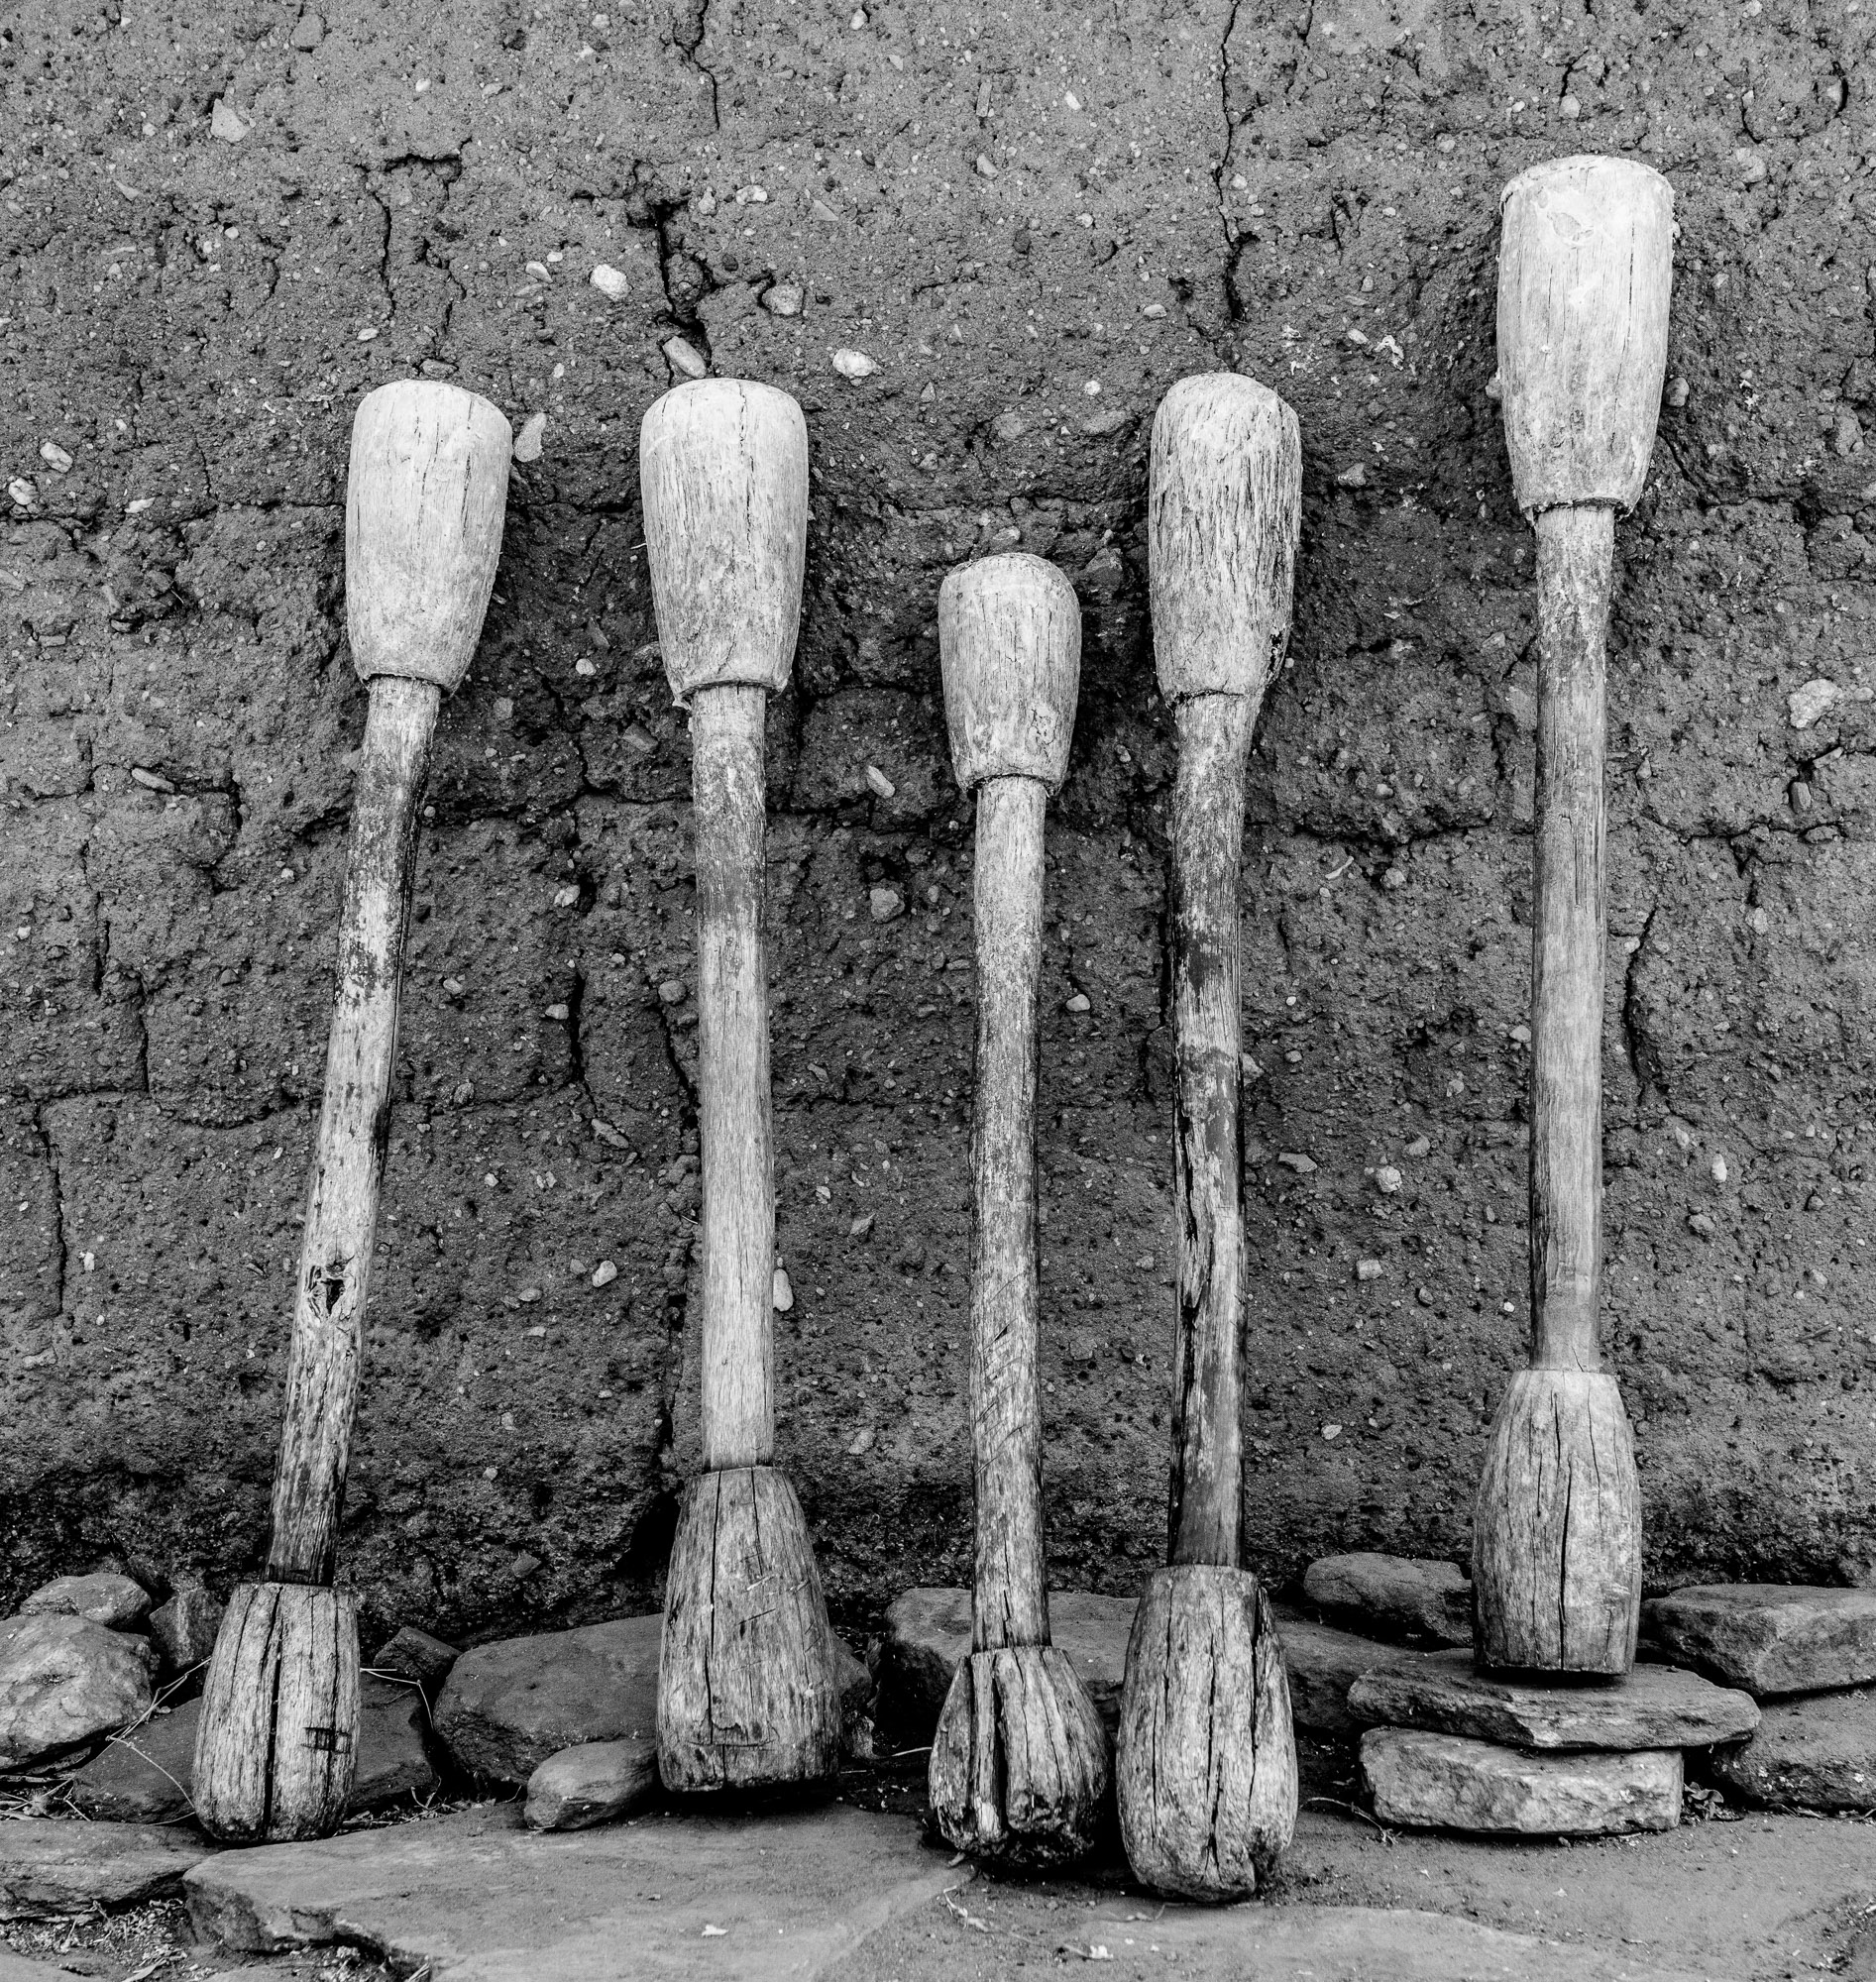 Foufou Implements, Togo